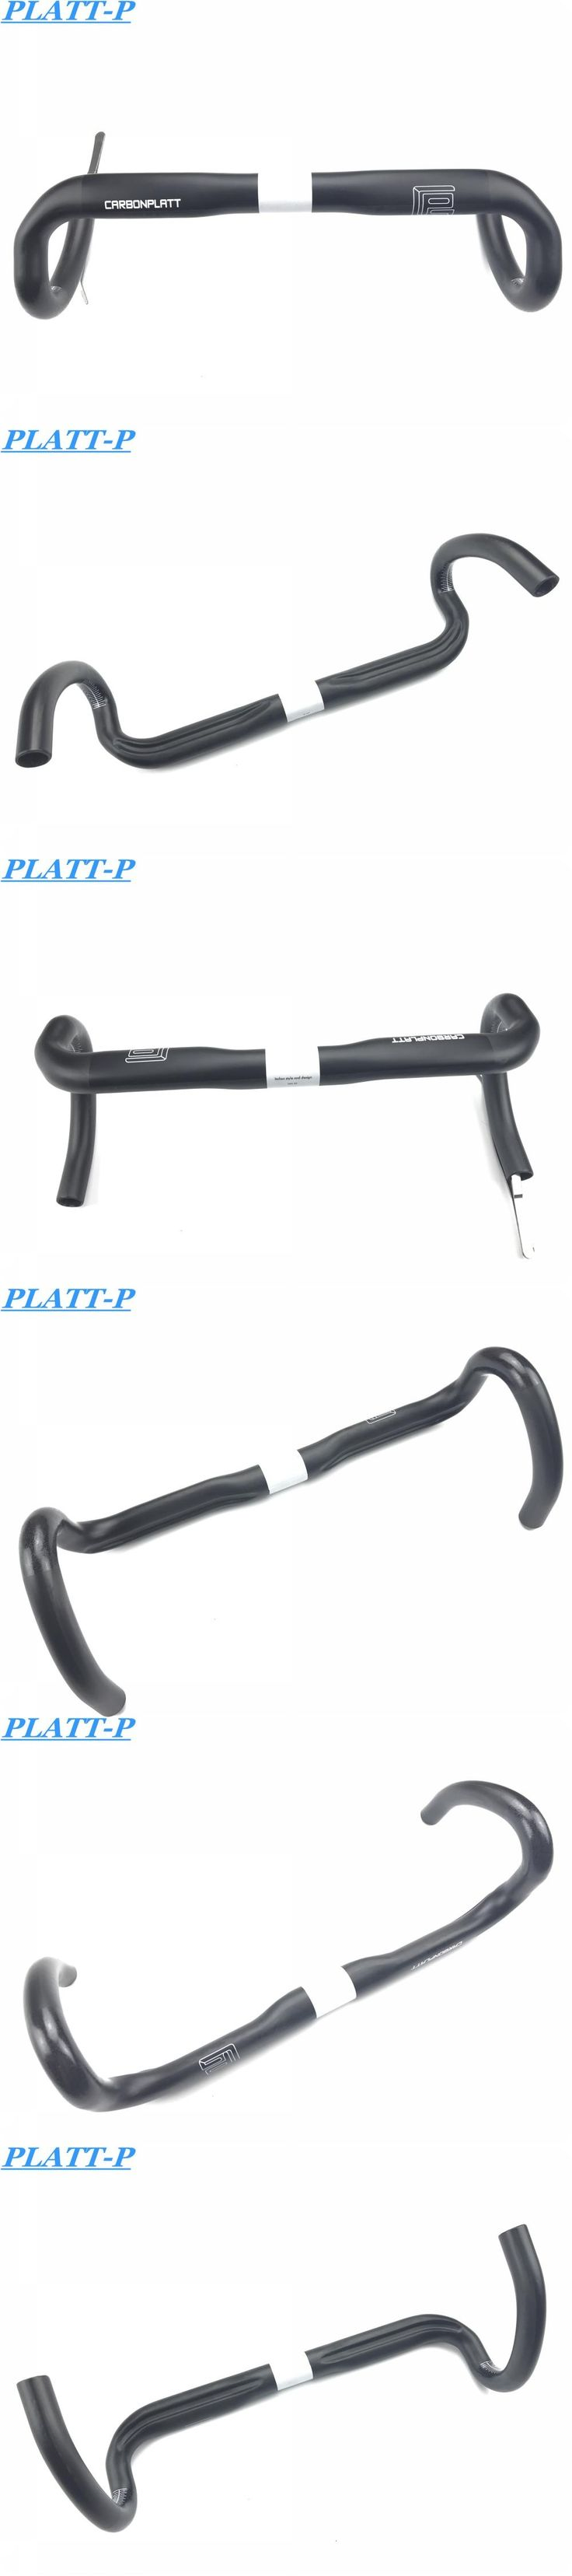 PLATT High Fiber Bar Manillar Carbono Carretera Steering Wheel UD Carbon Road Handlebar 3 Colors